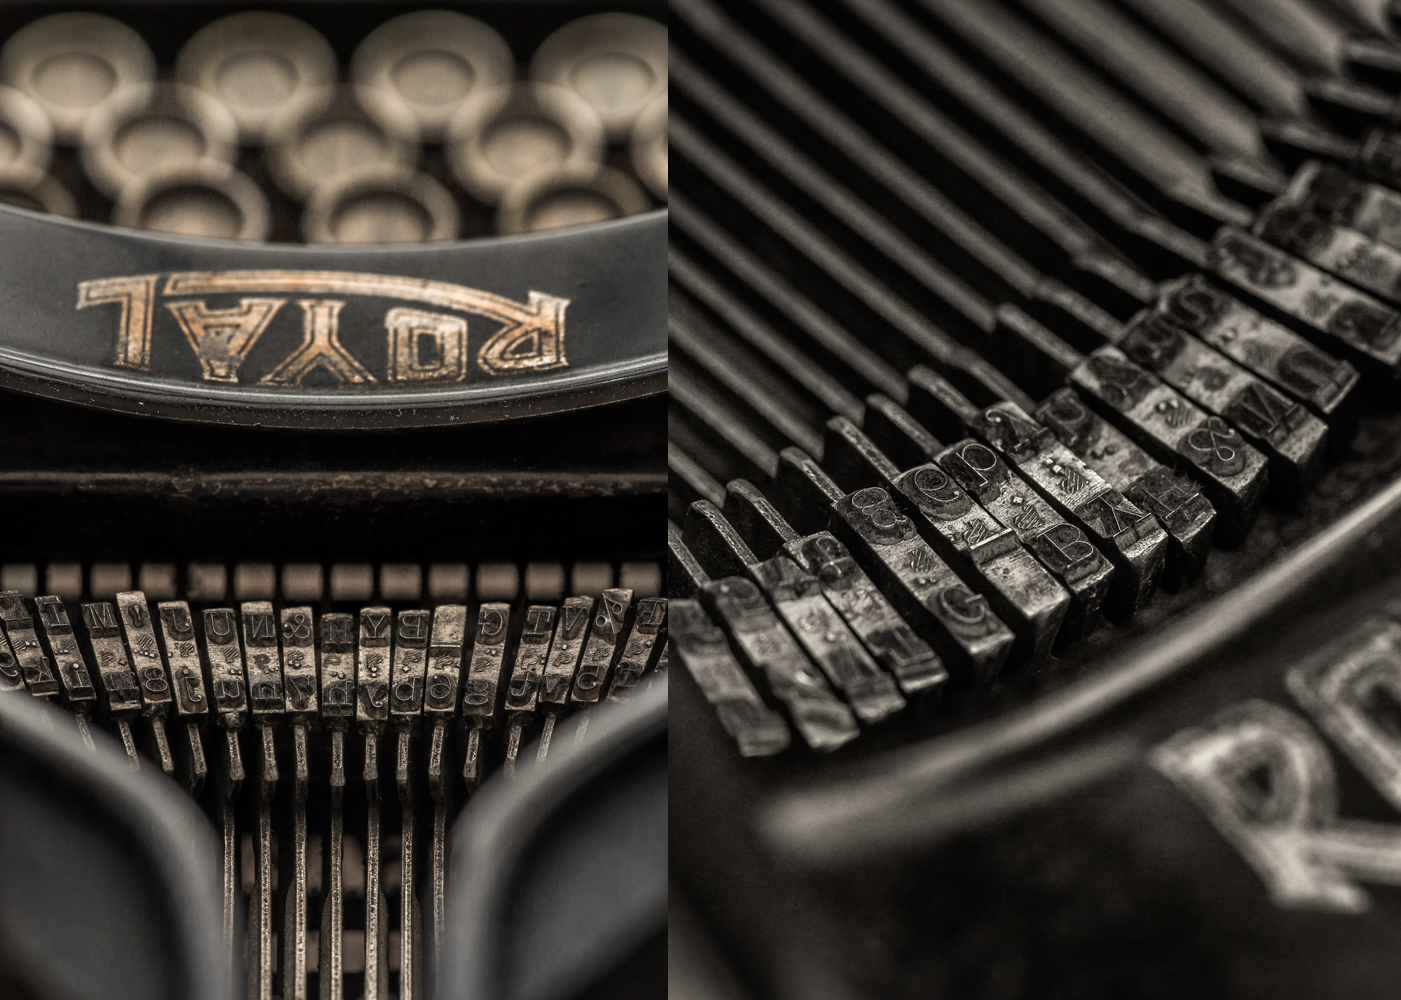 royal typewriter_details_group